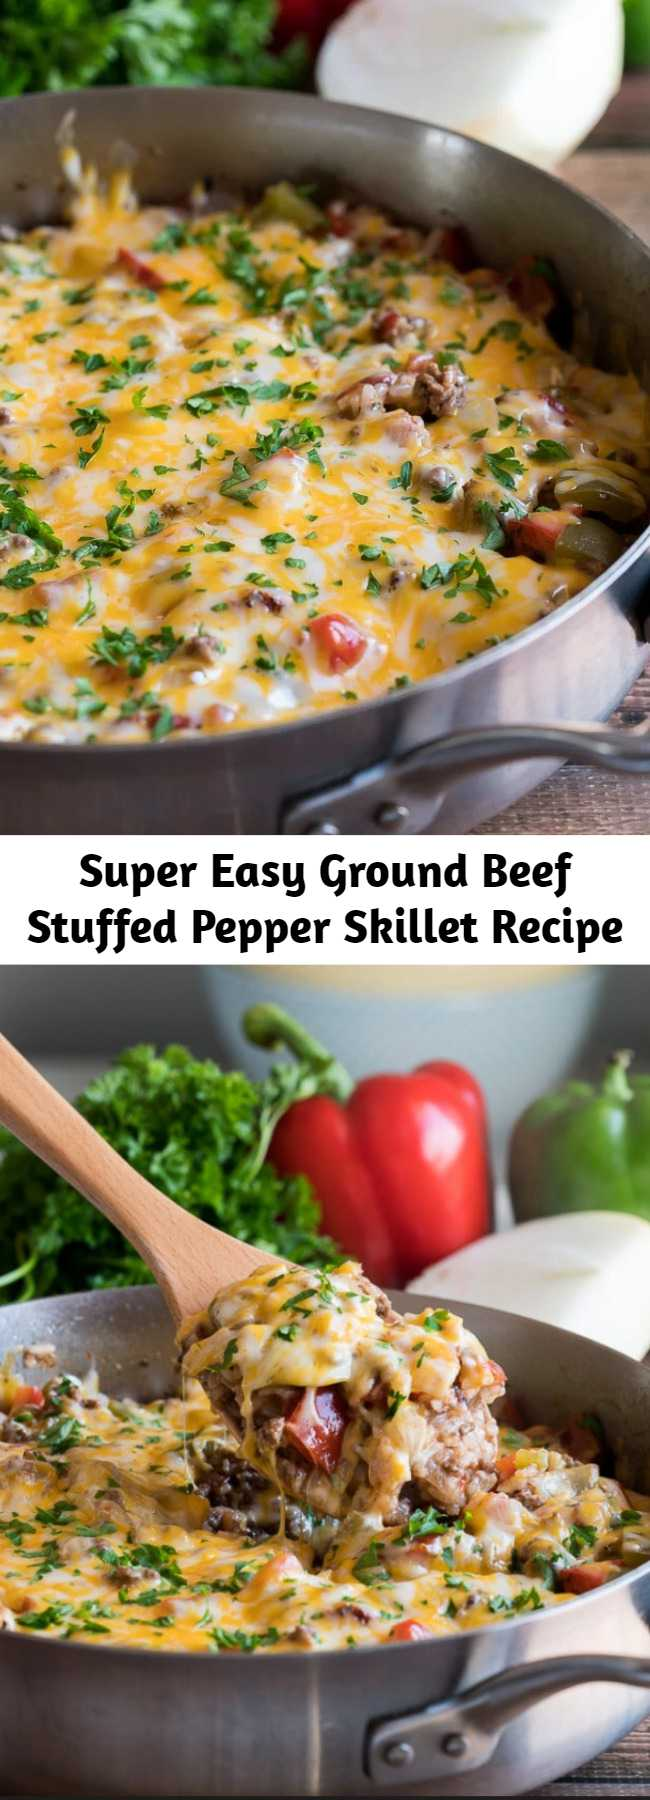 Super Easy Ground Beef Stuffed Pepper Skillet Recipe - This super easy Ground Beef Stuffed Pepper Skillet is made in just one pan in less than 30 minutes! All the flavors you love of a stuffed pepper without all the hassle!